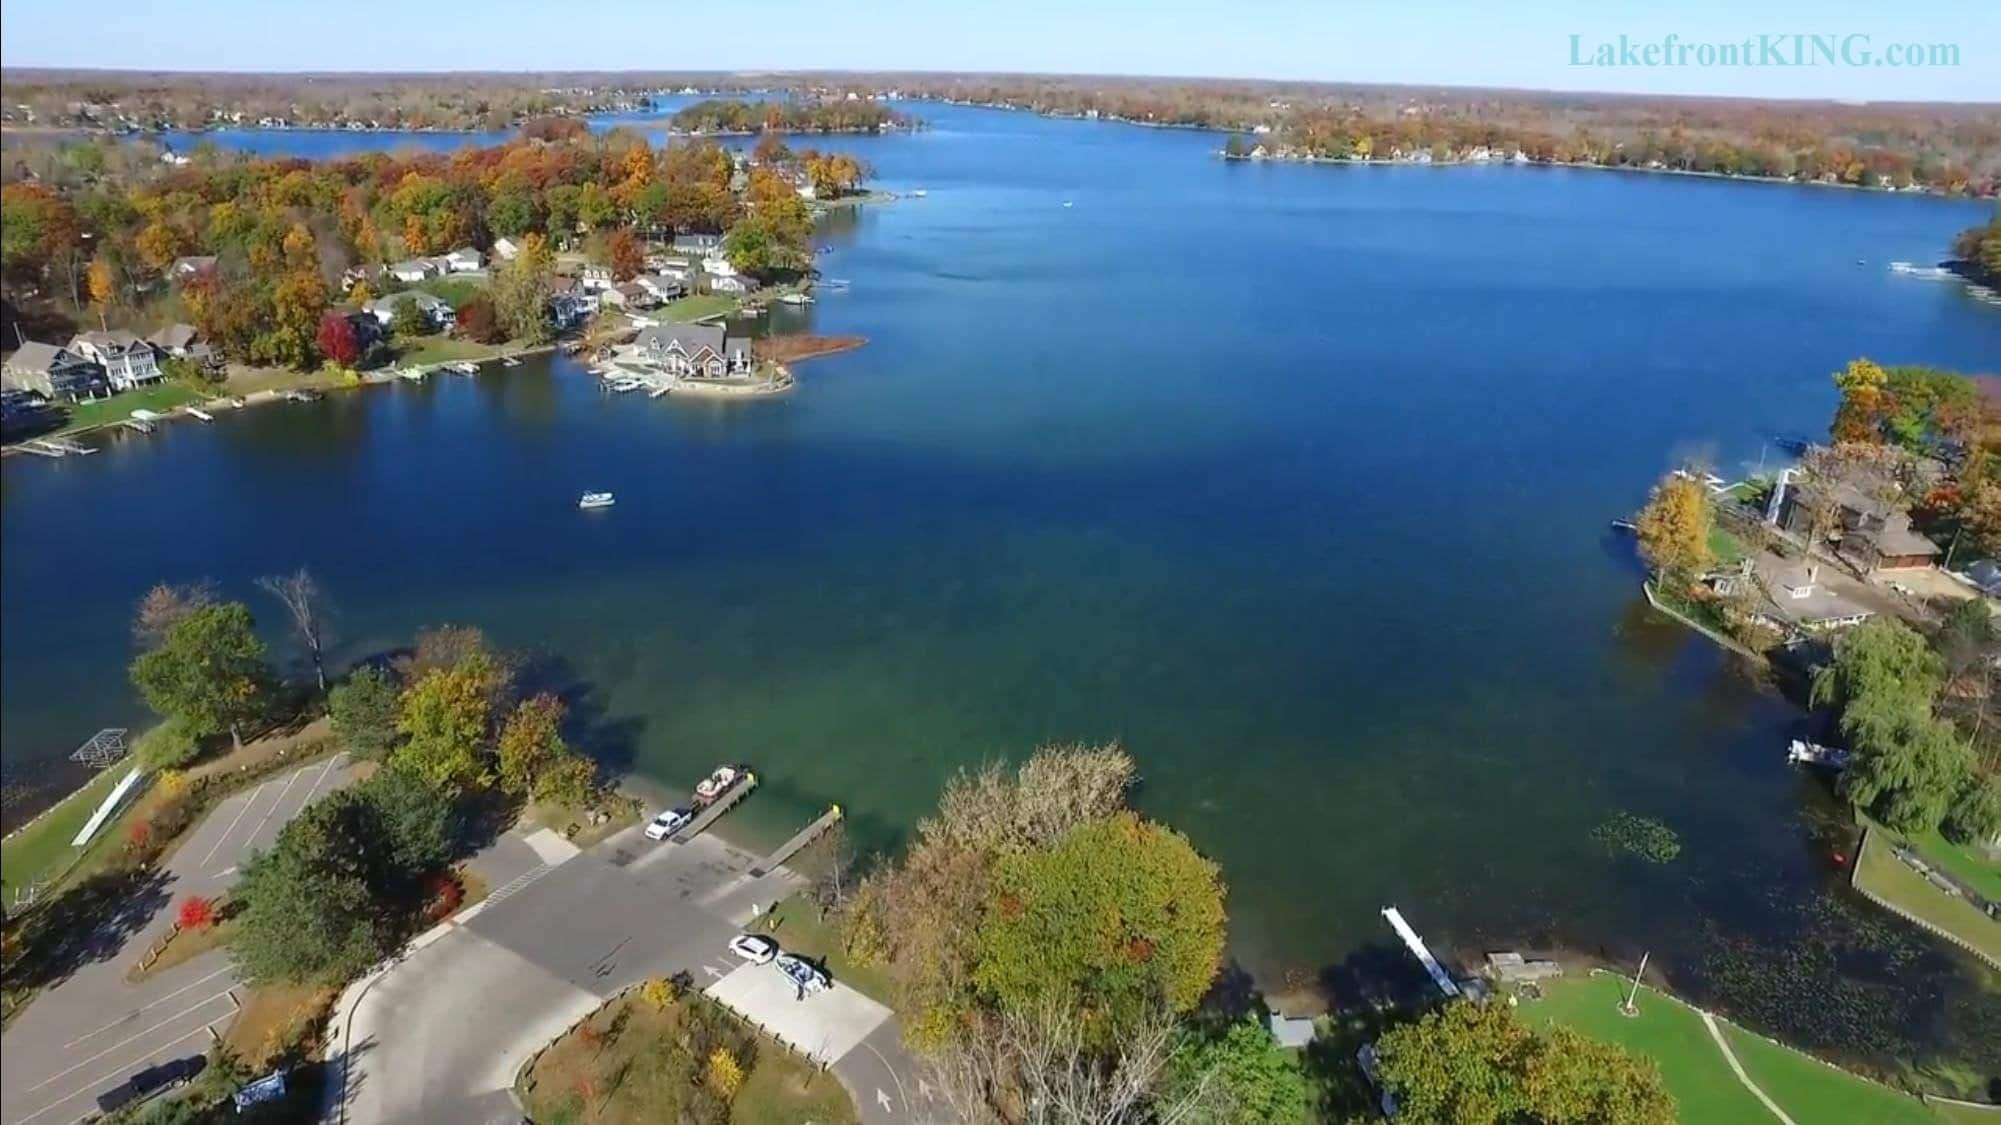 Search for homes for sale on lake fenton